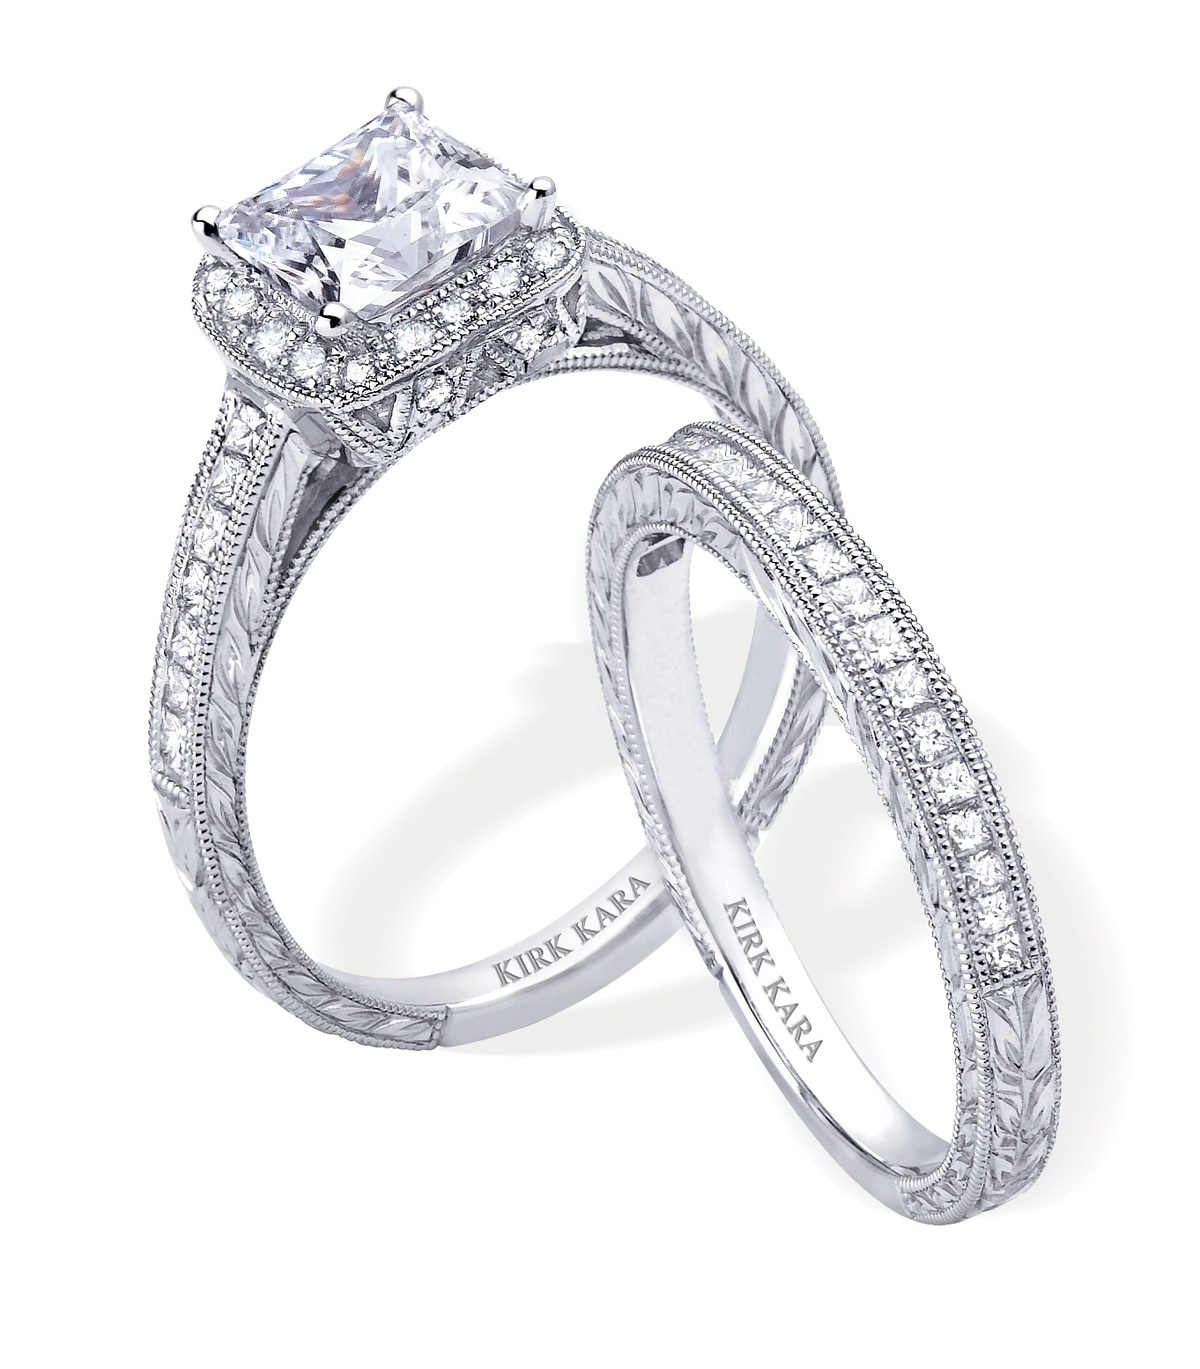 wedding ring and band set 28 images channel enement - Wedding Ring And Band Set